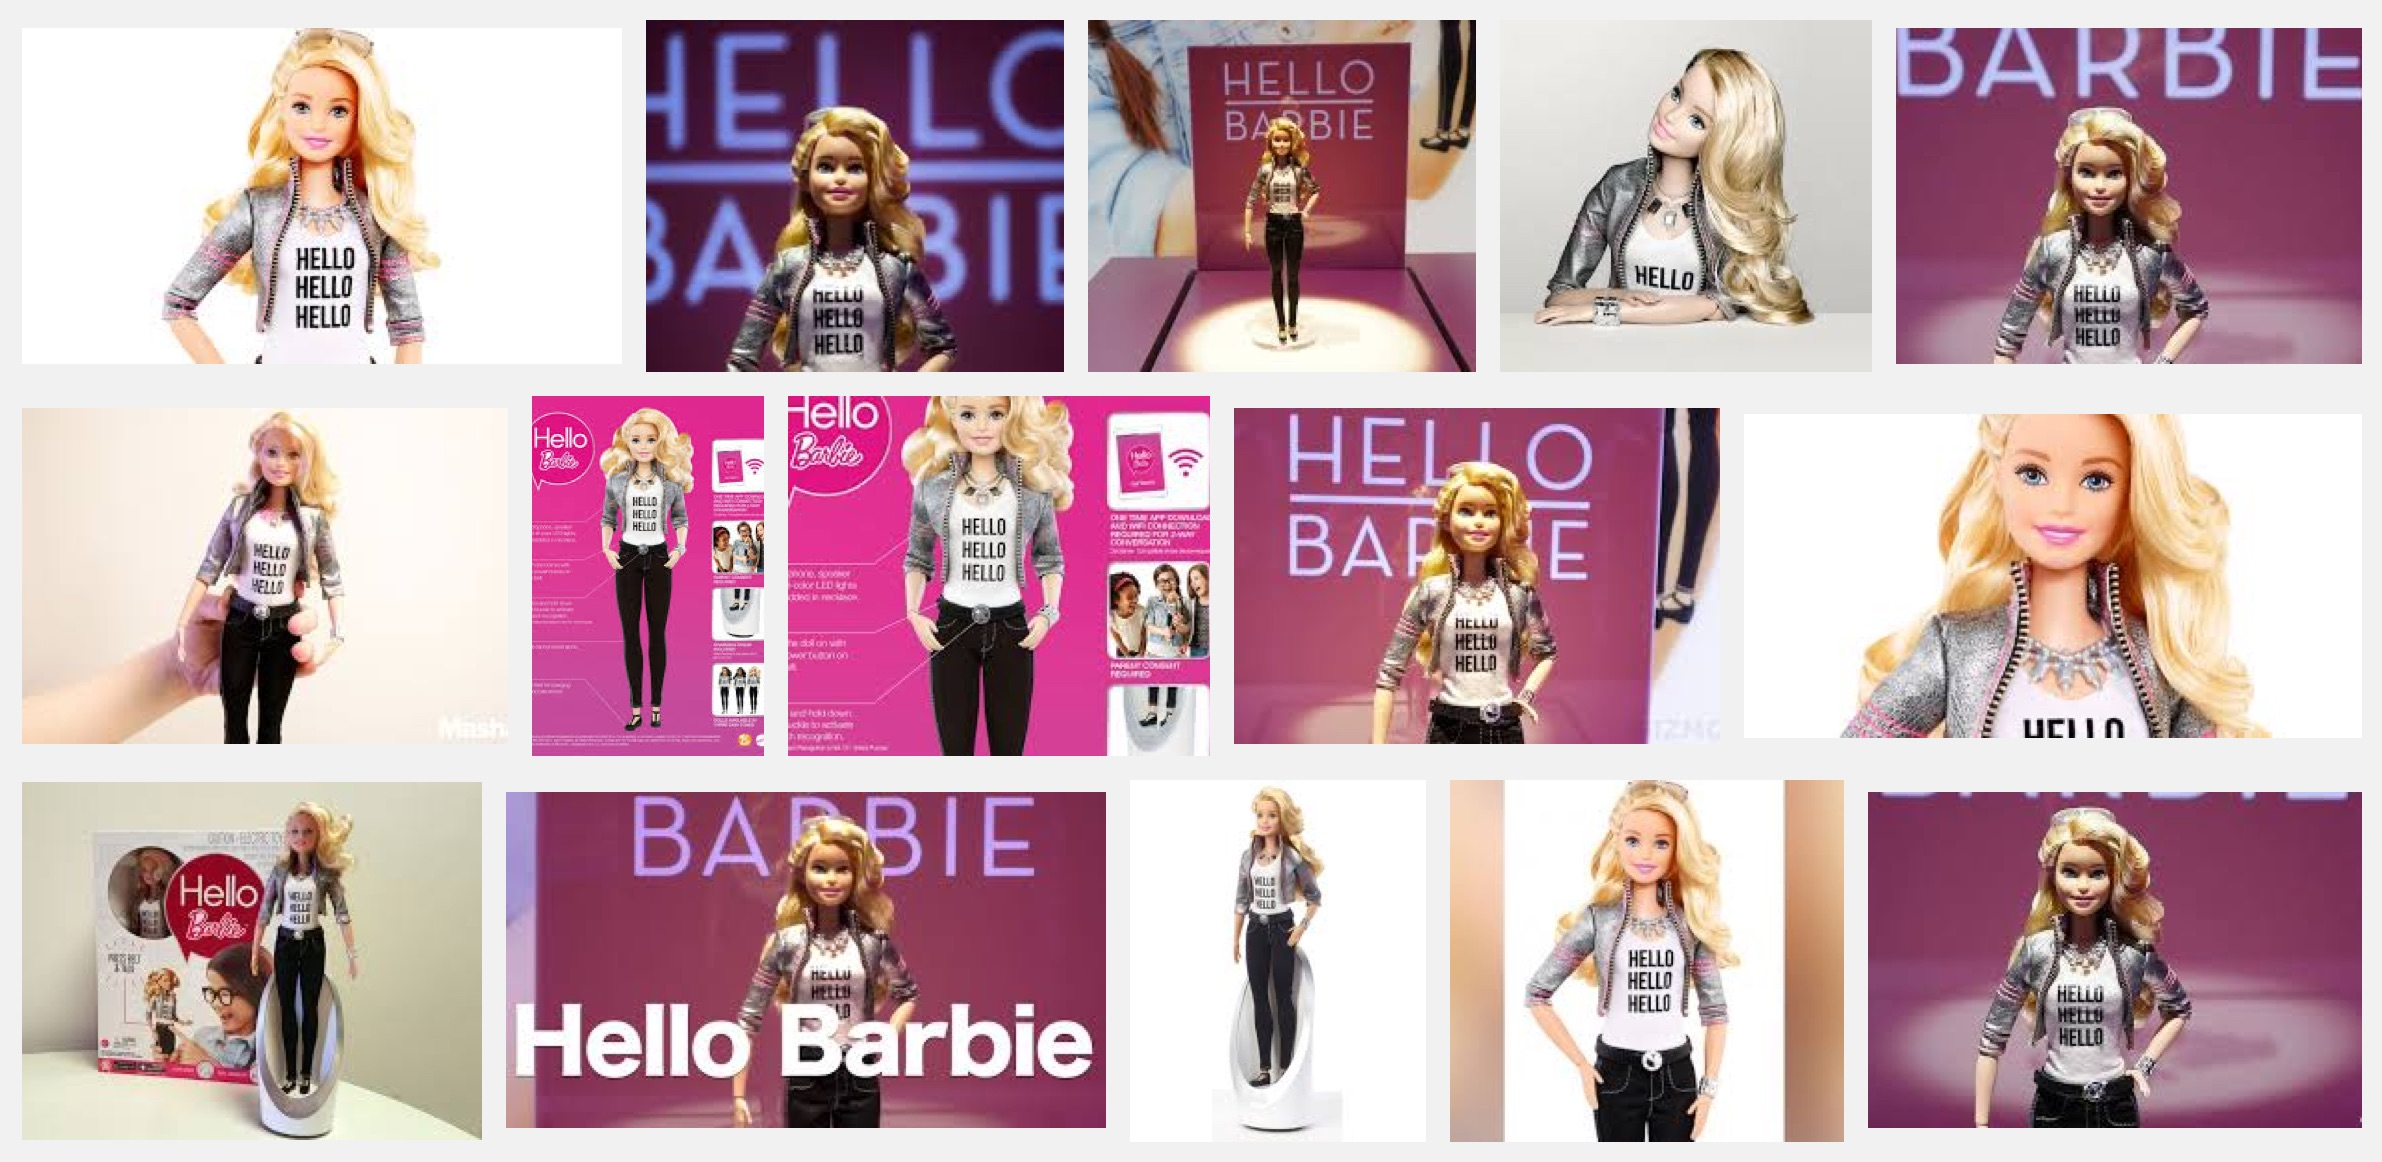 Google-search-hello-barbie